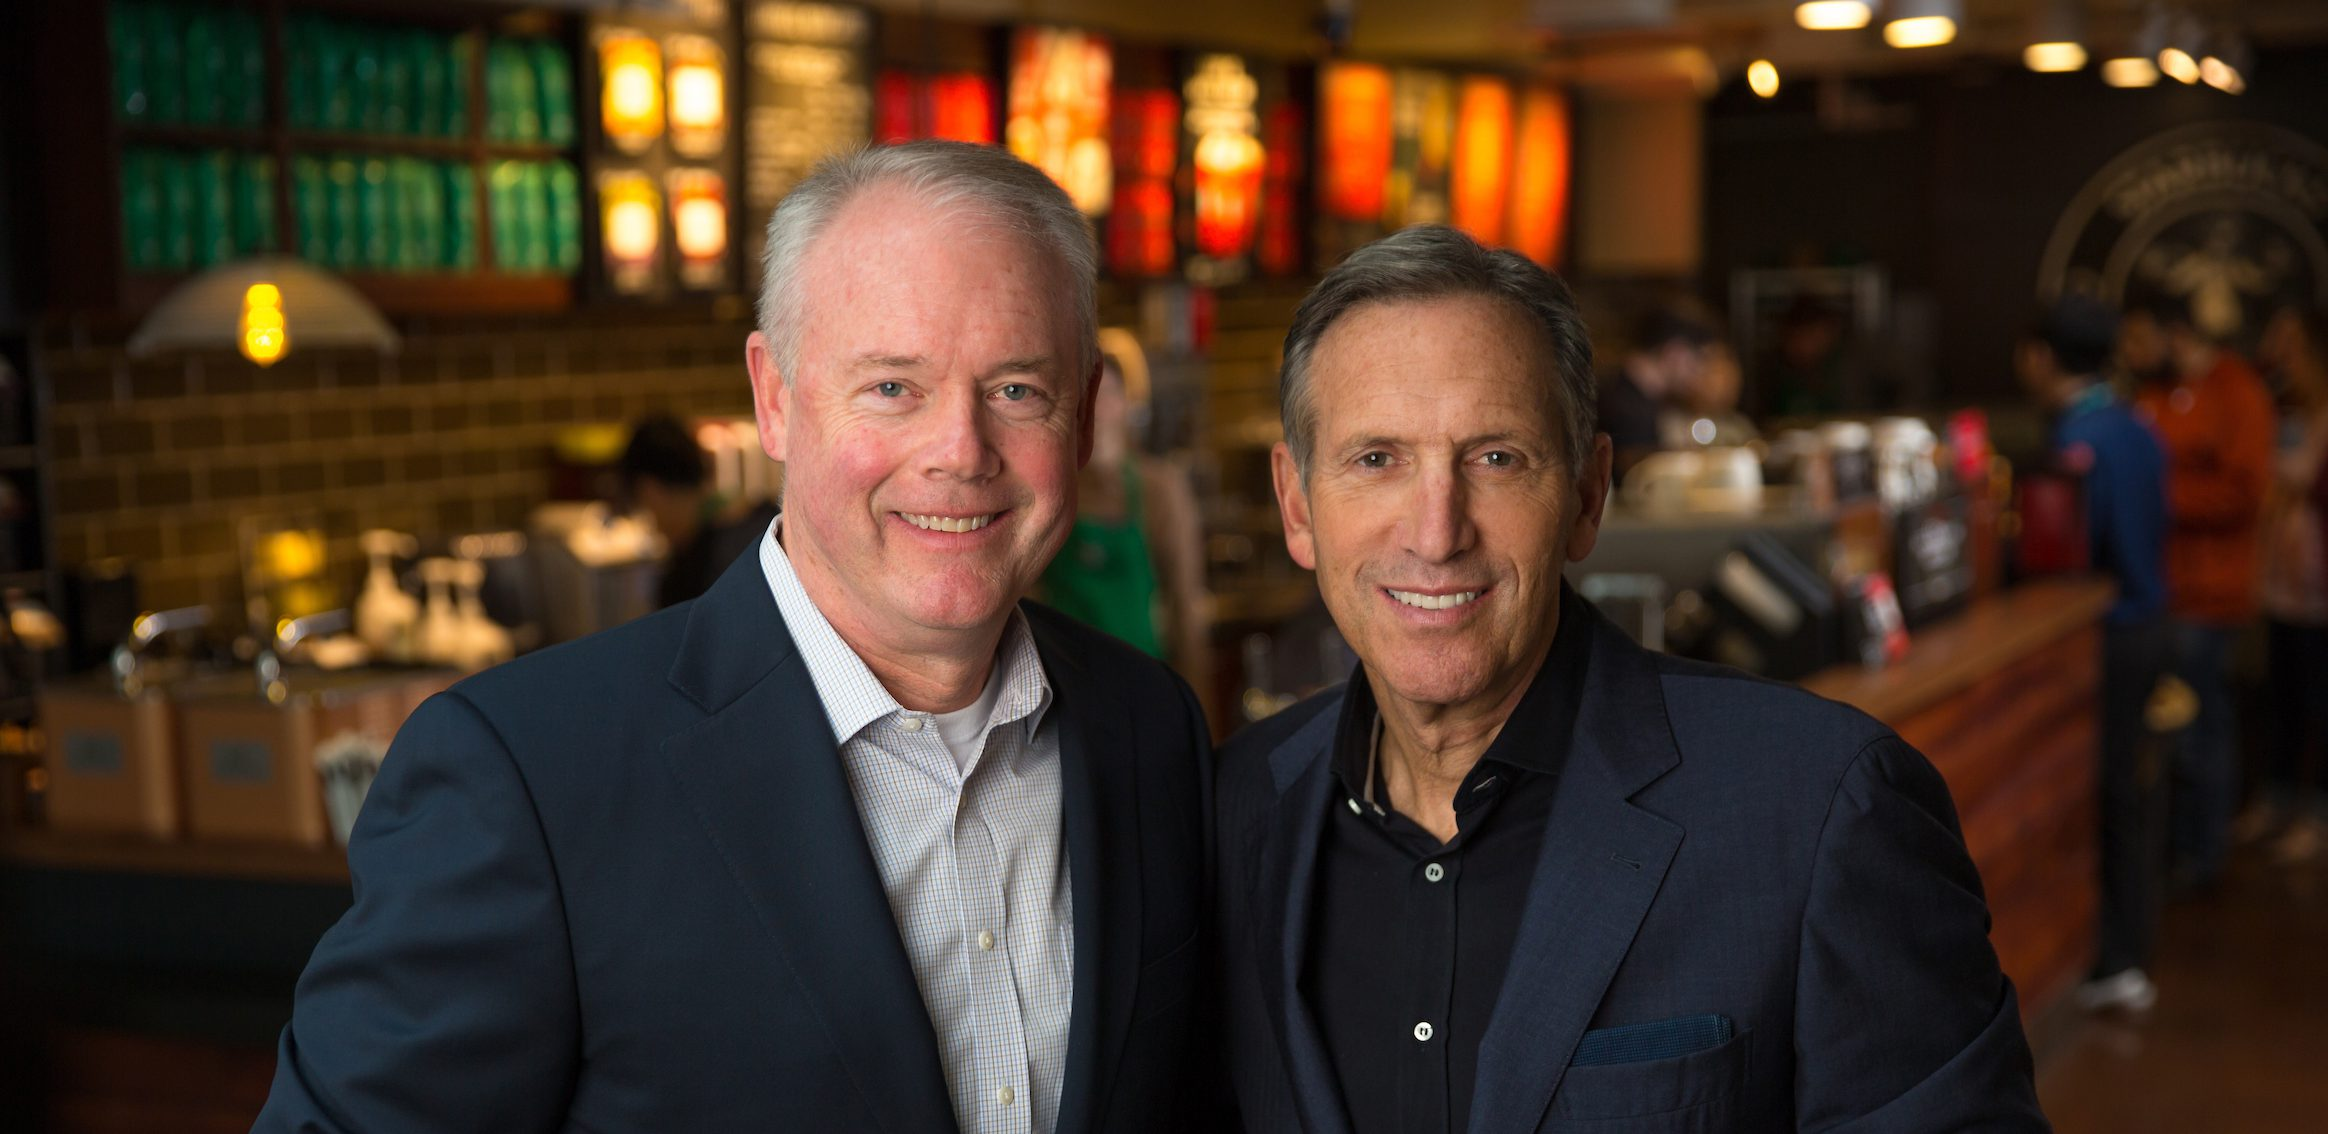 Starbucks CEO Howard Schultz Stepping Down To Focus On Upscale Coffee